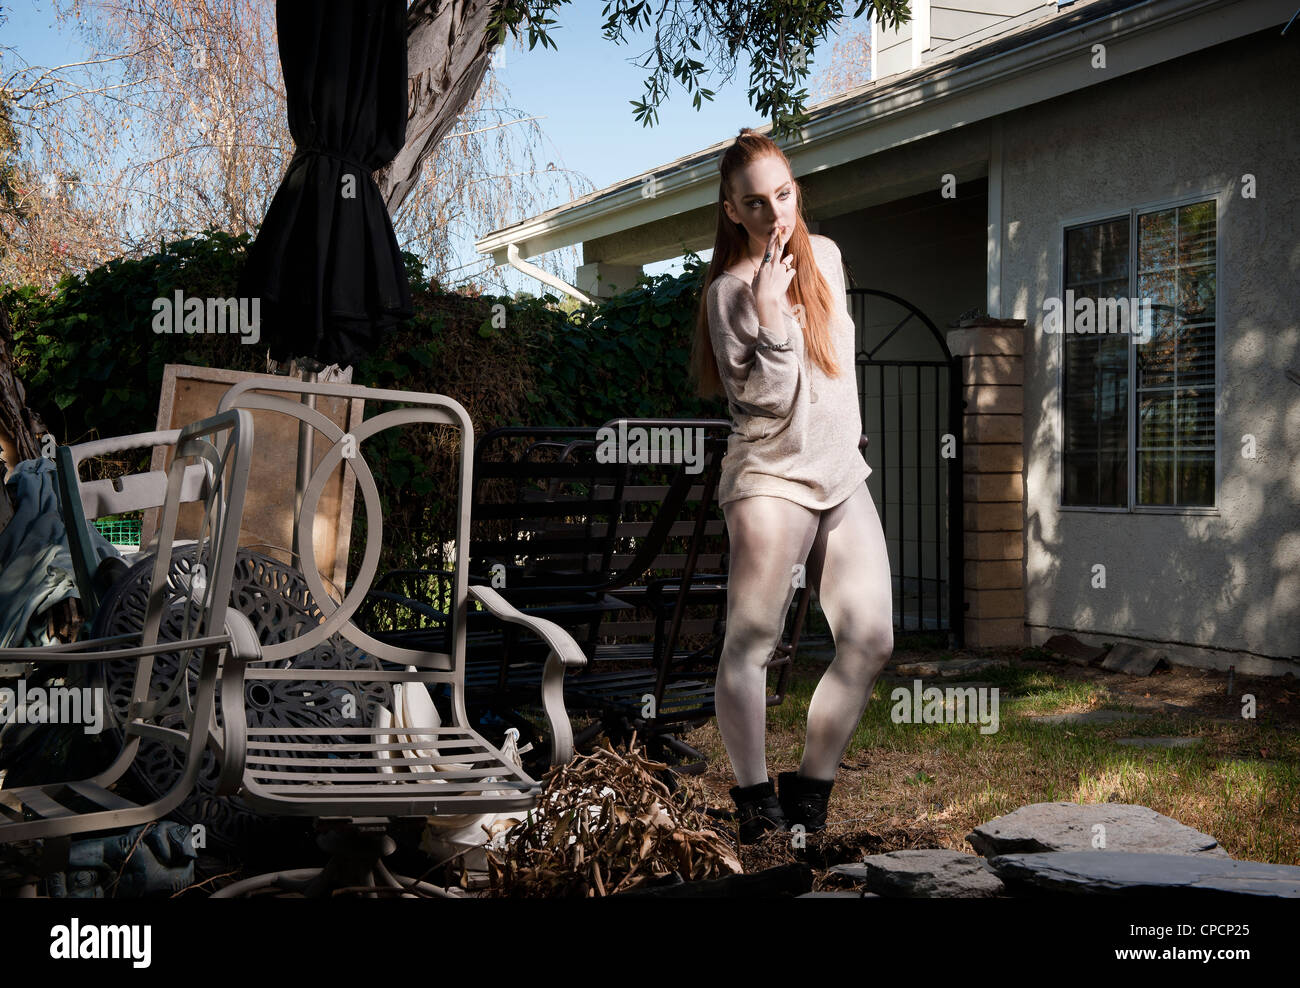 Woman standing in dilapidated backyard - Stock Image